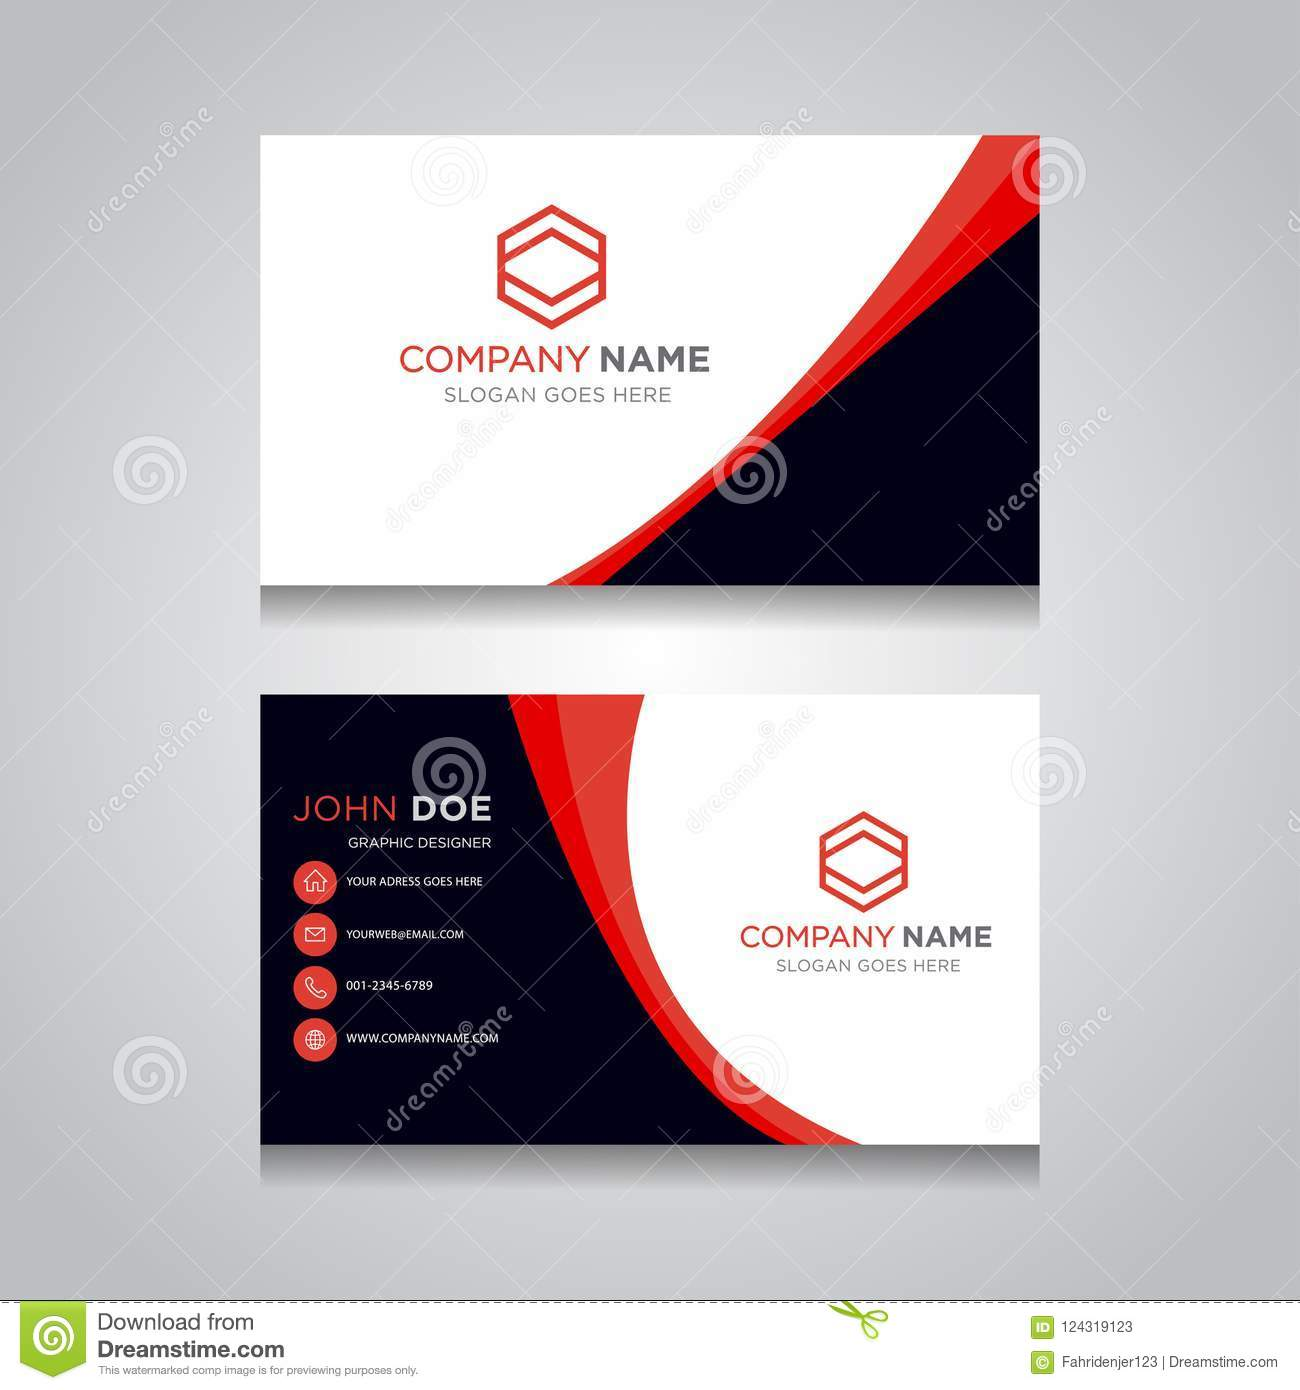 Business card template creative business card stock vector download business card template creative business card stock vector illustration of graphic identity cheaphphosting Choice Image